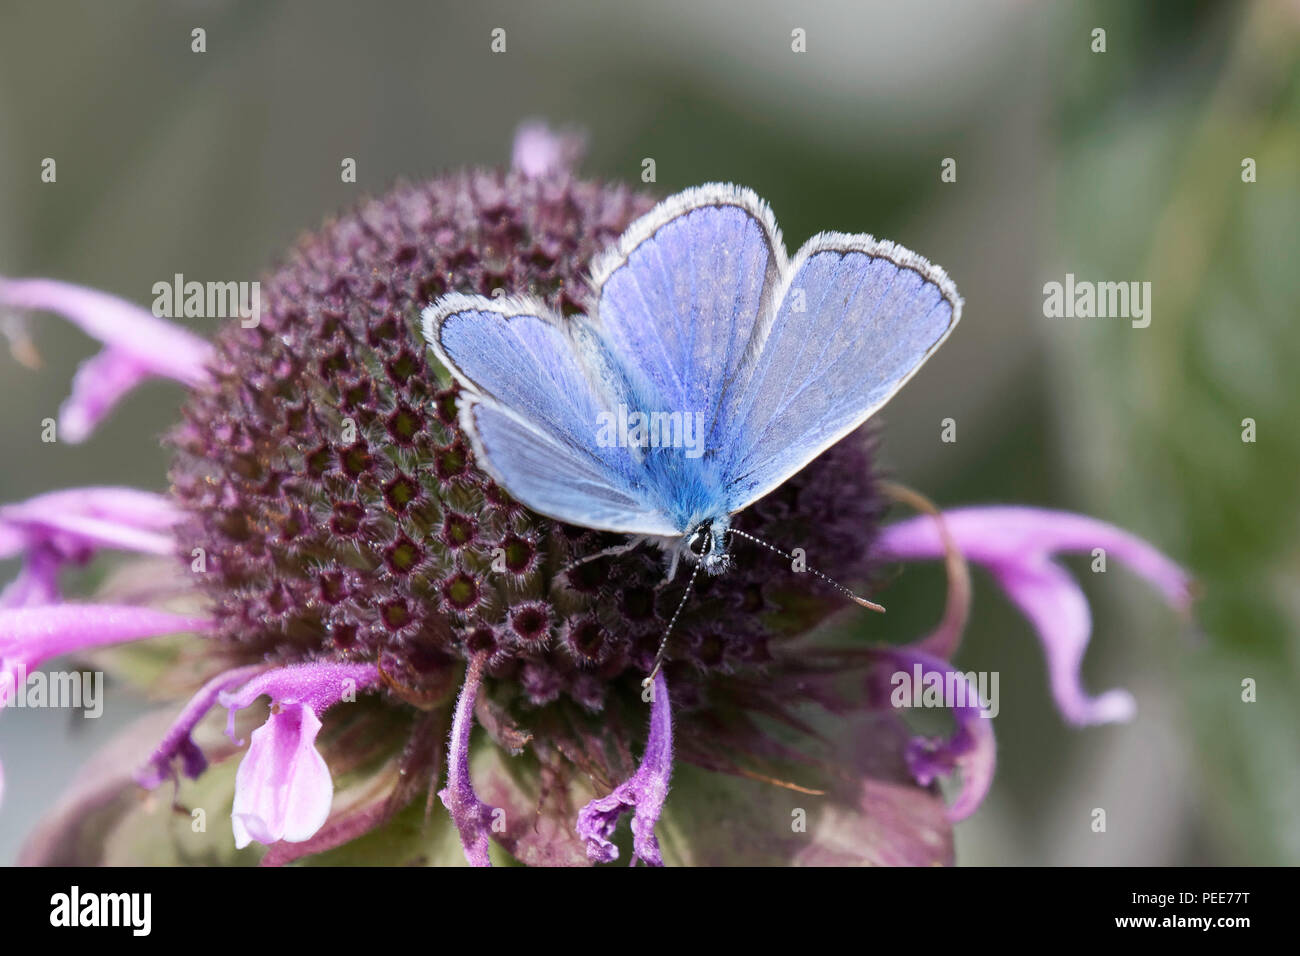 A male Common Blue butterfly feeding on a Monarda flower - Stock Image